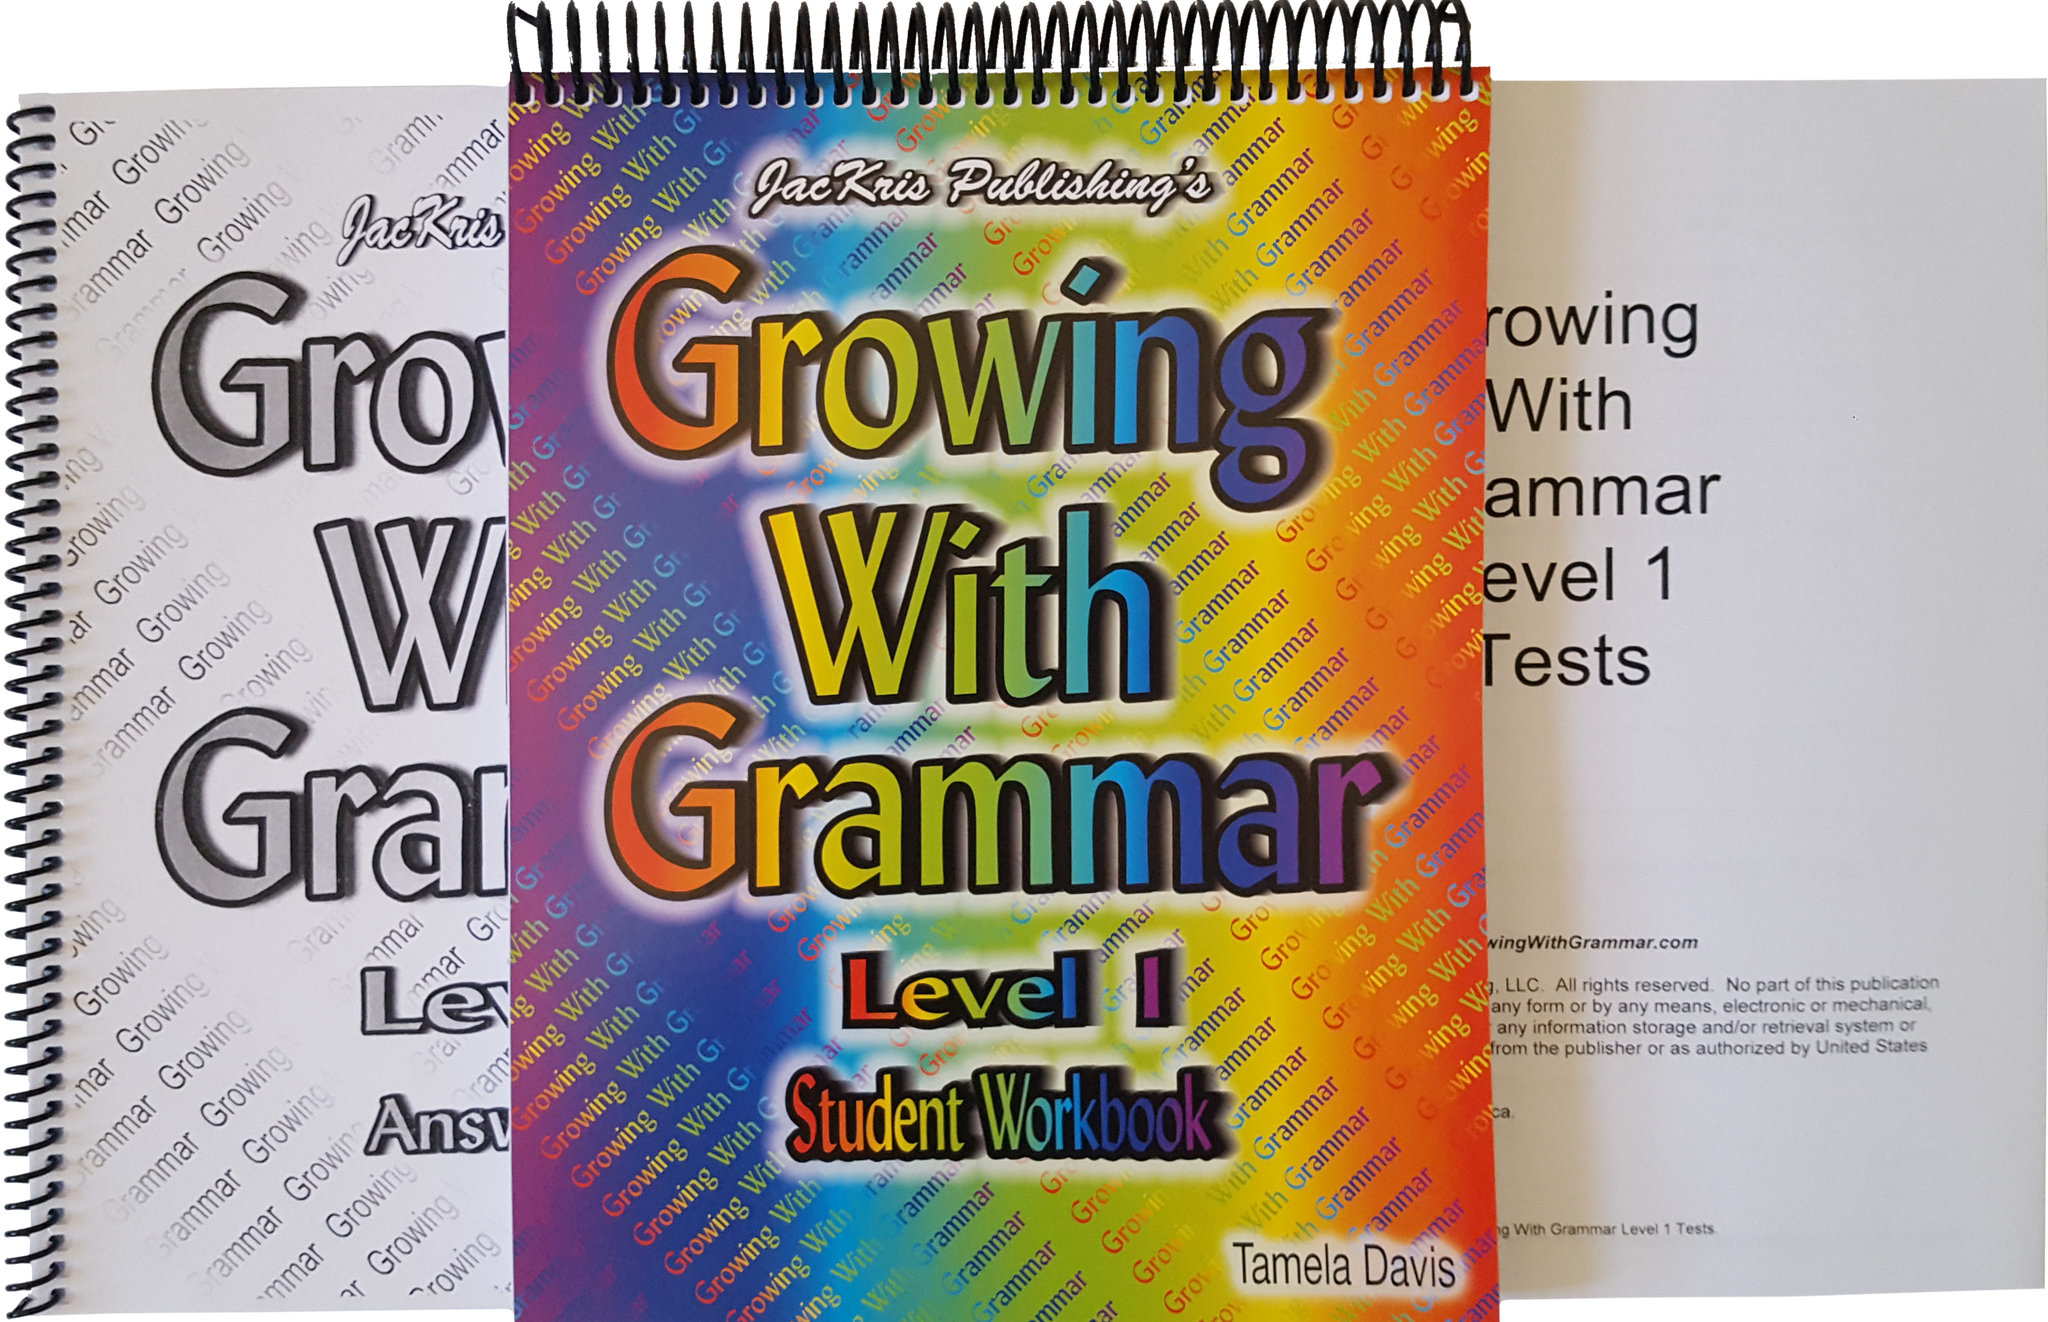 Growing With Grammar- Levels 1-8 – JacKris Publishing